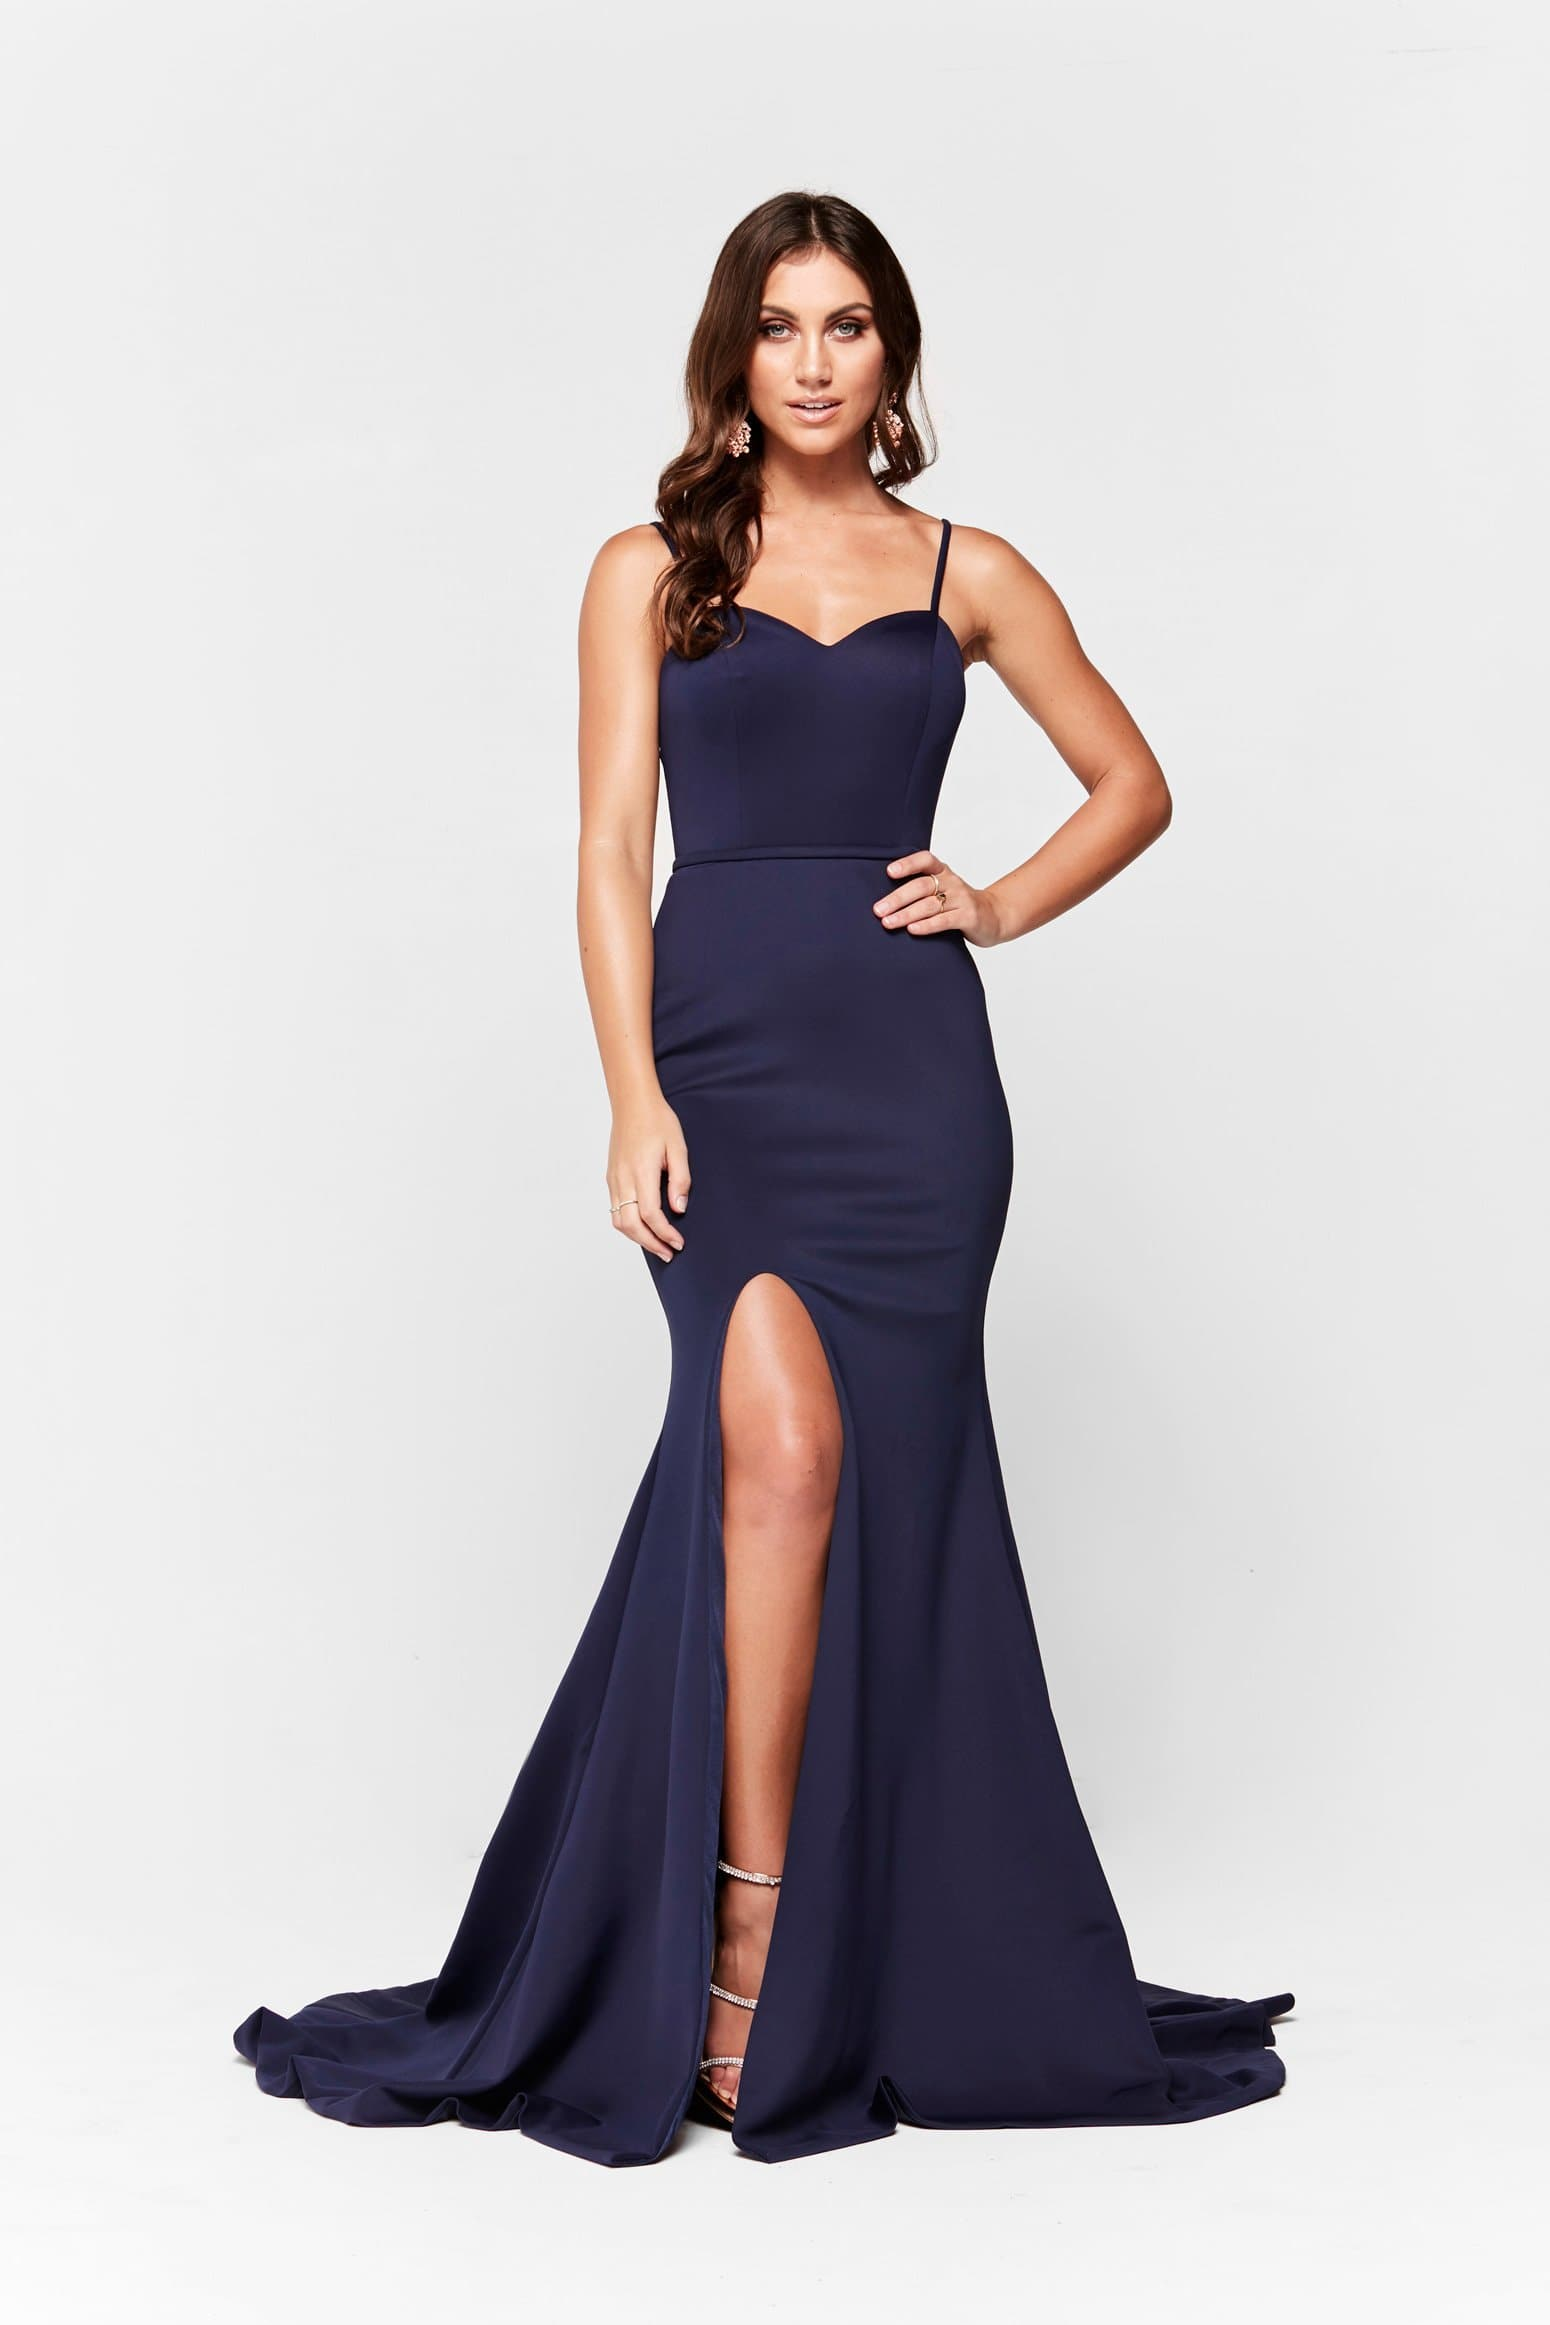 A&N Elizabeth - Navy Ponti Gown with Sweetheart Neckline and Slit